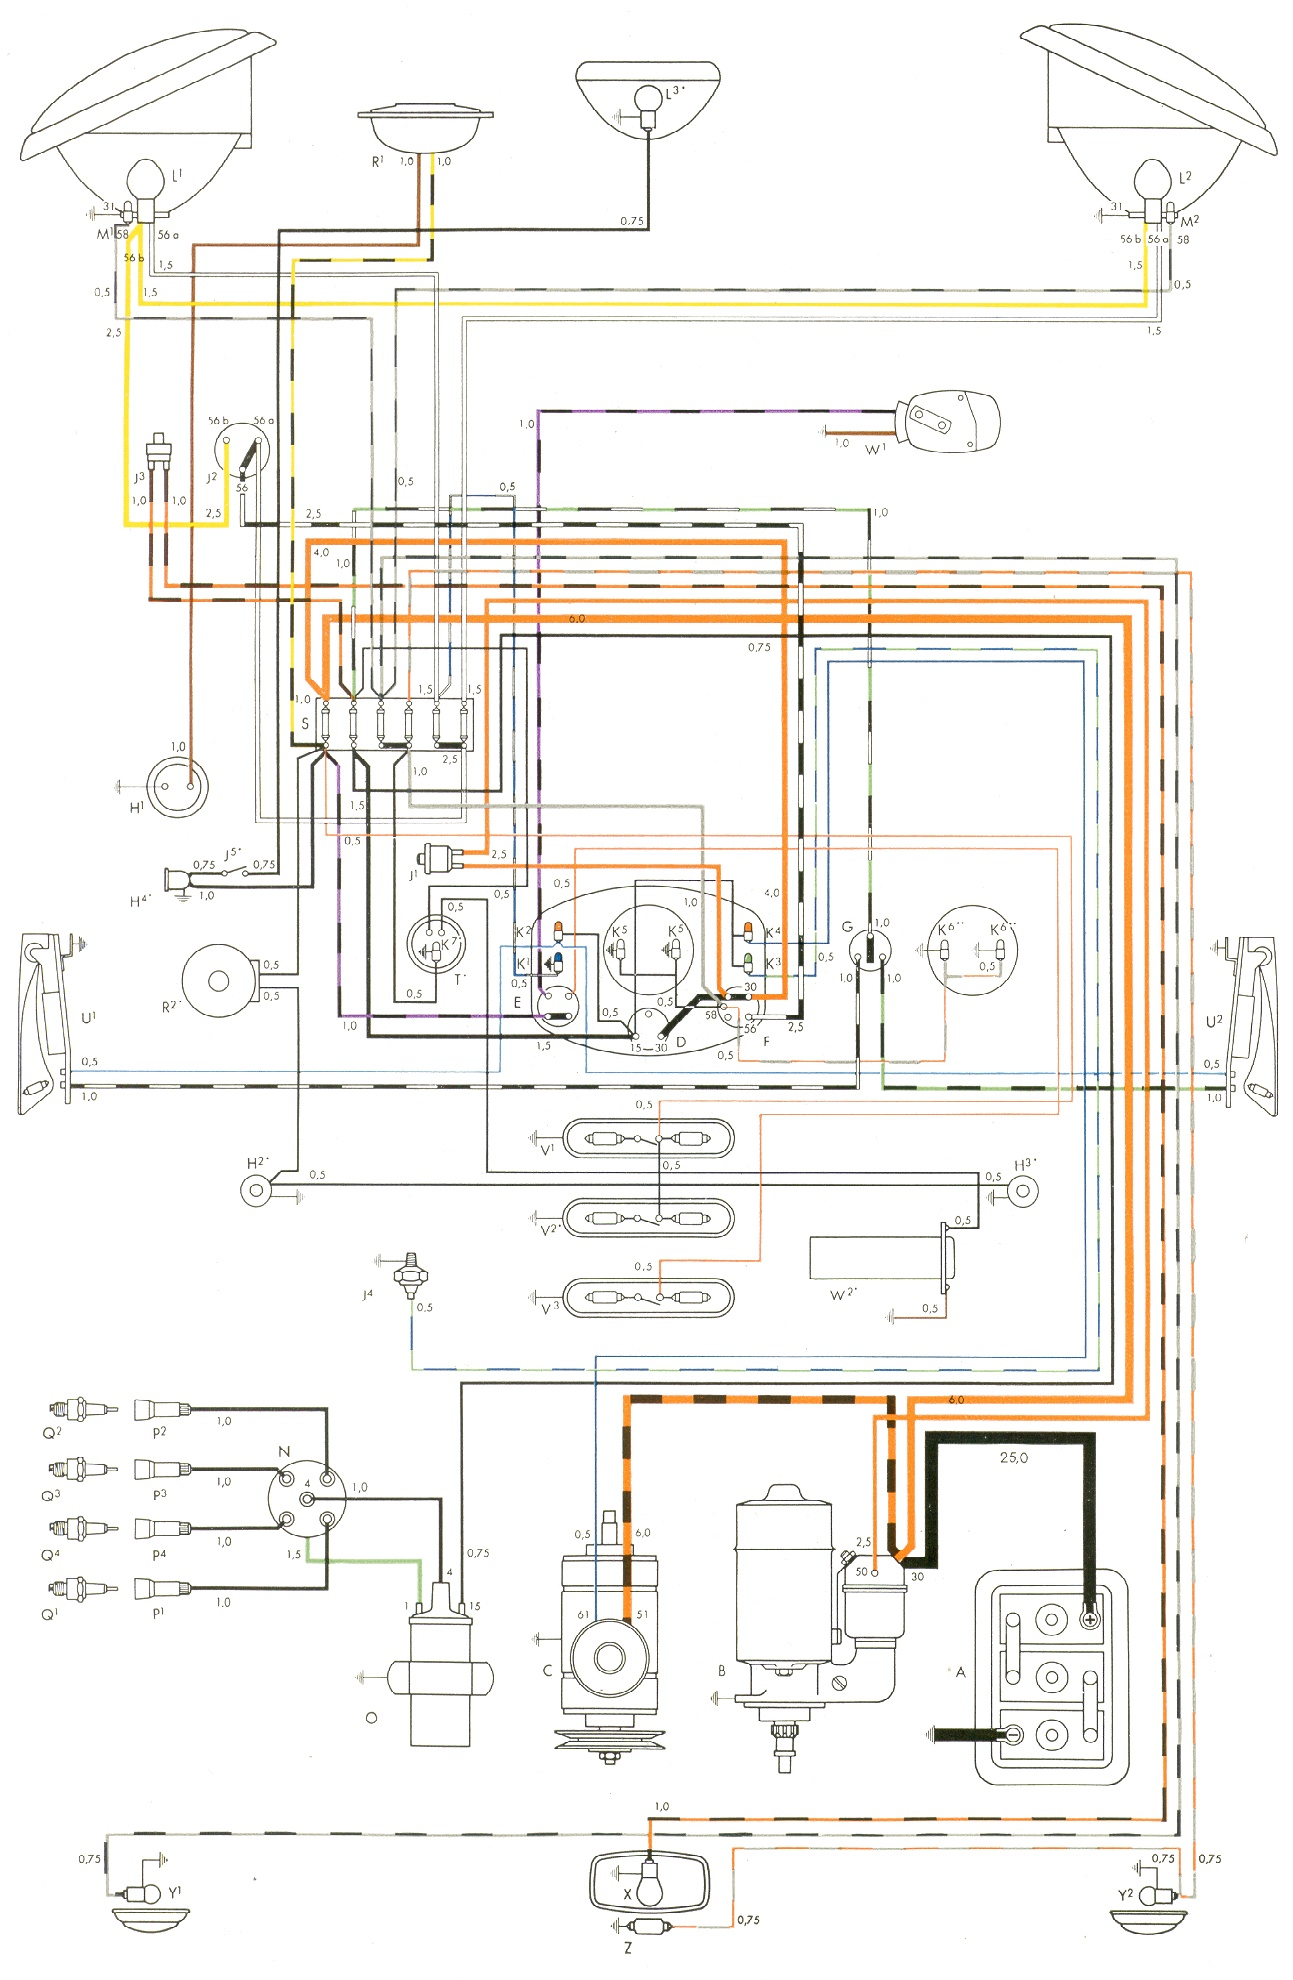 coil wiring diagram 2000 wiring schematic diagram rh 50 twizer co